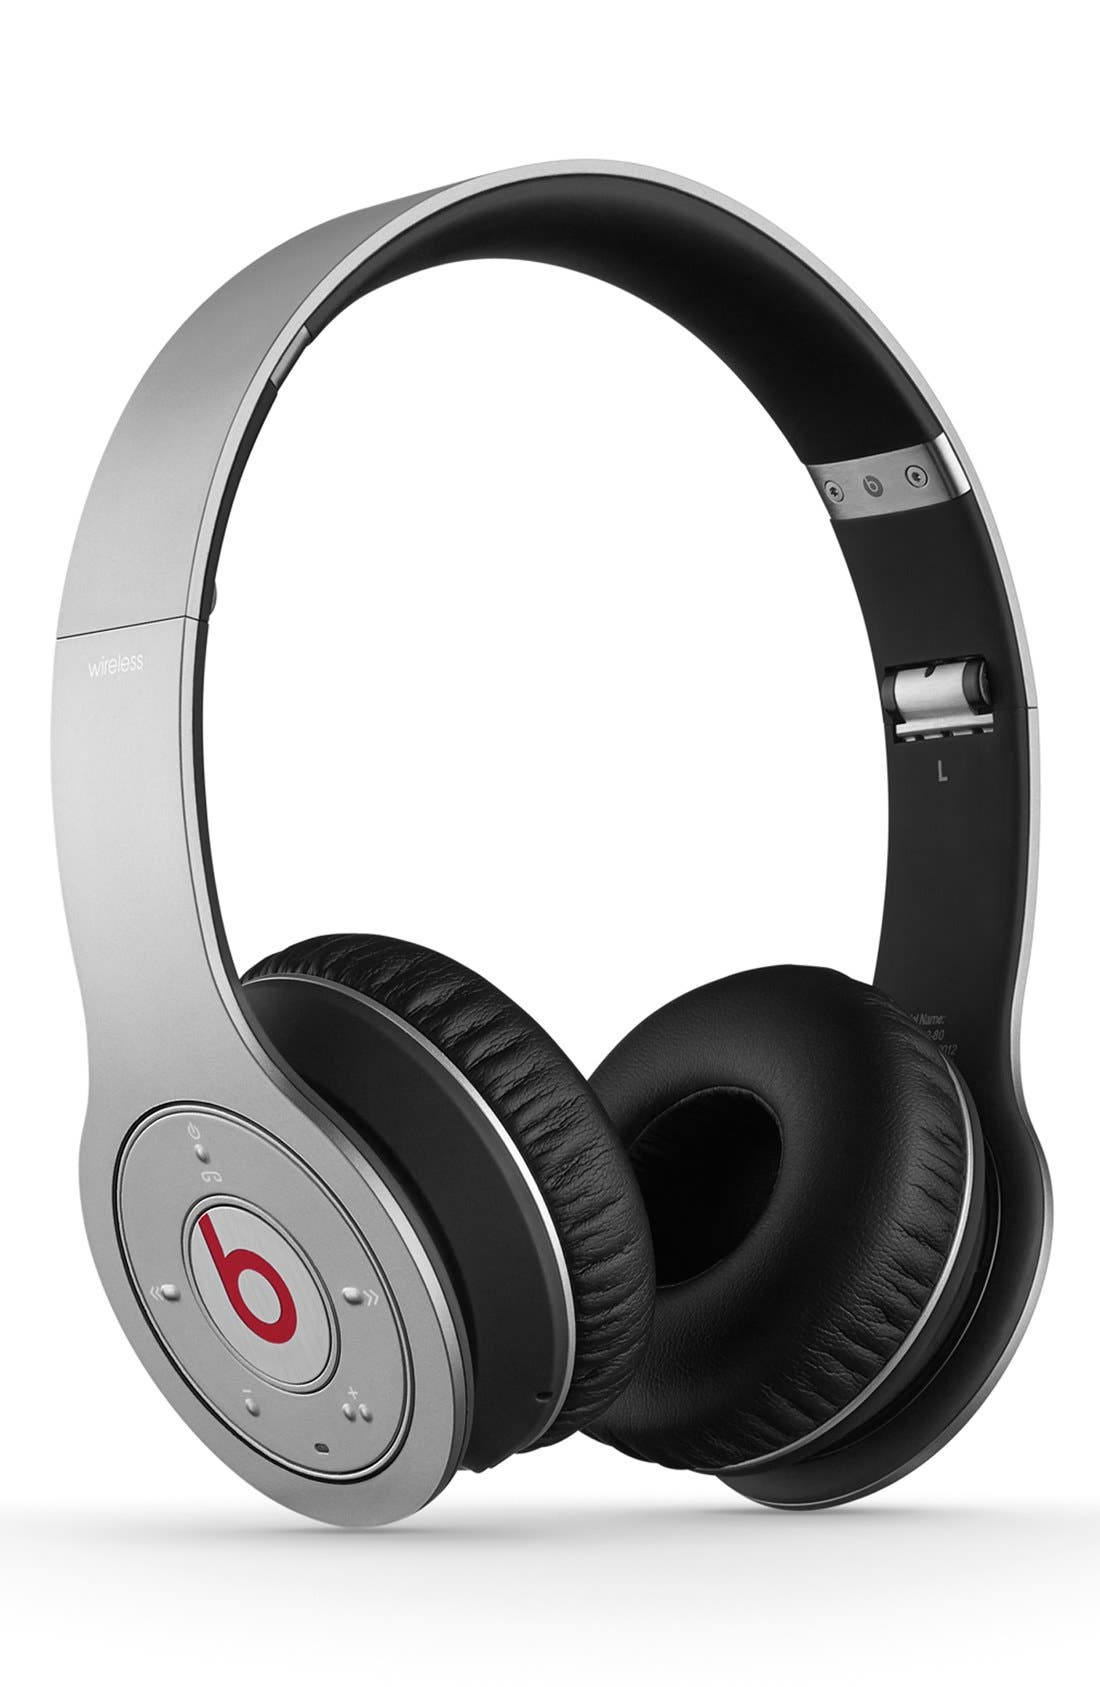 Main Image - Beats by Dr. Dre™ Wireless High Definition On-Ear Headphones